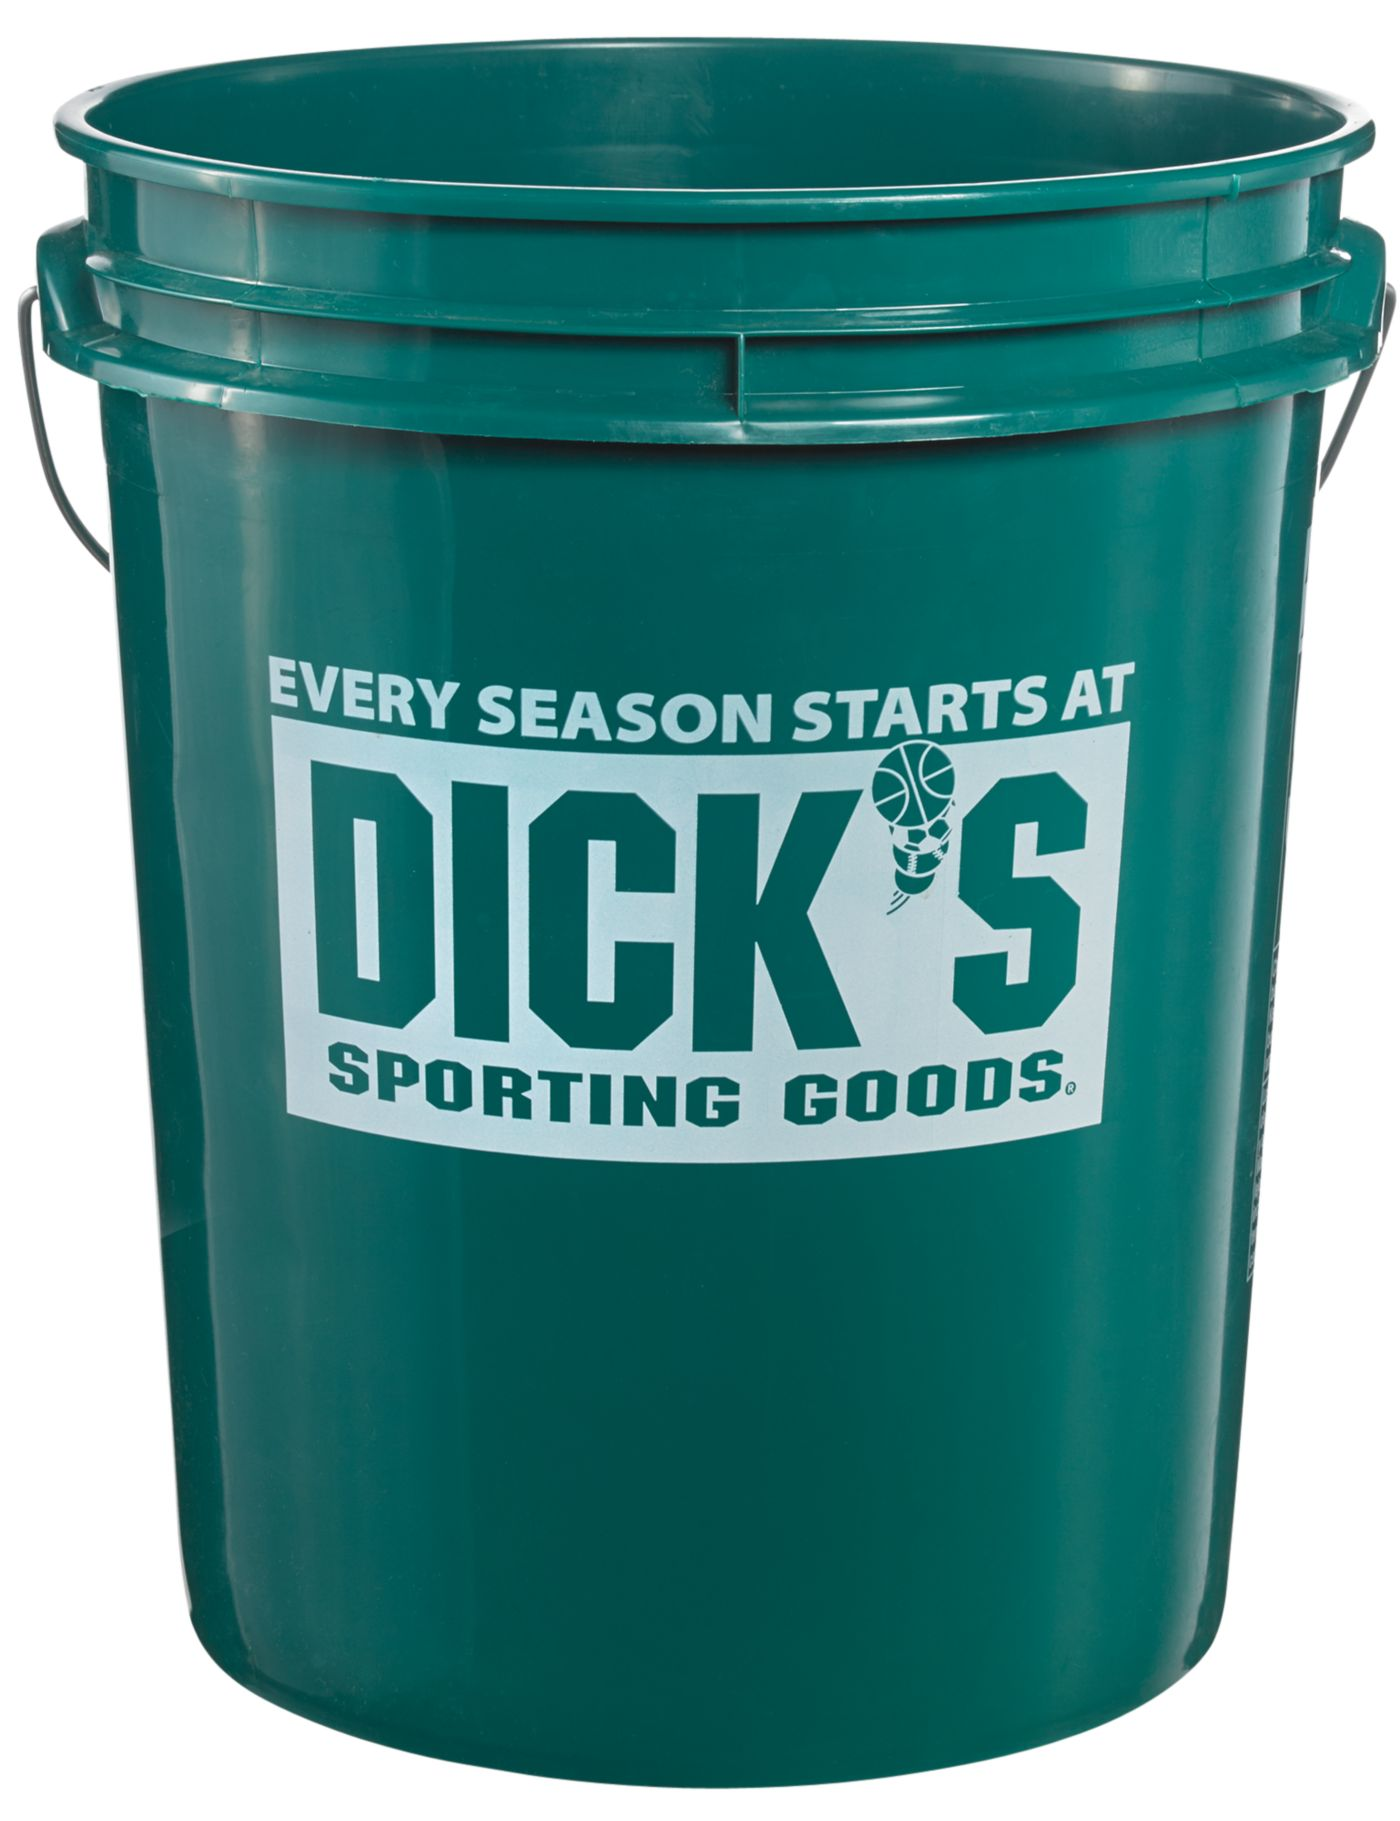 DICK'S Sporting Goods 5-gallon Bucket